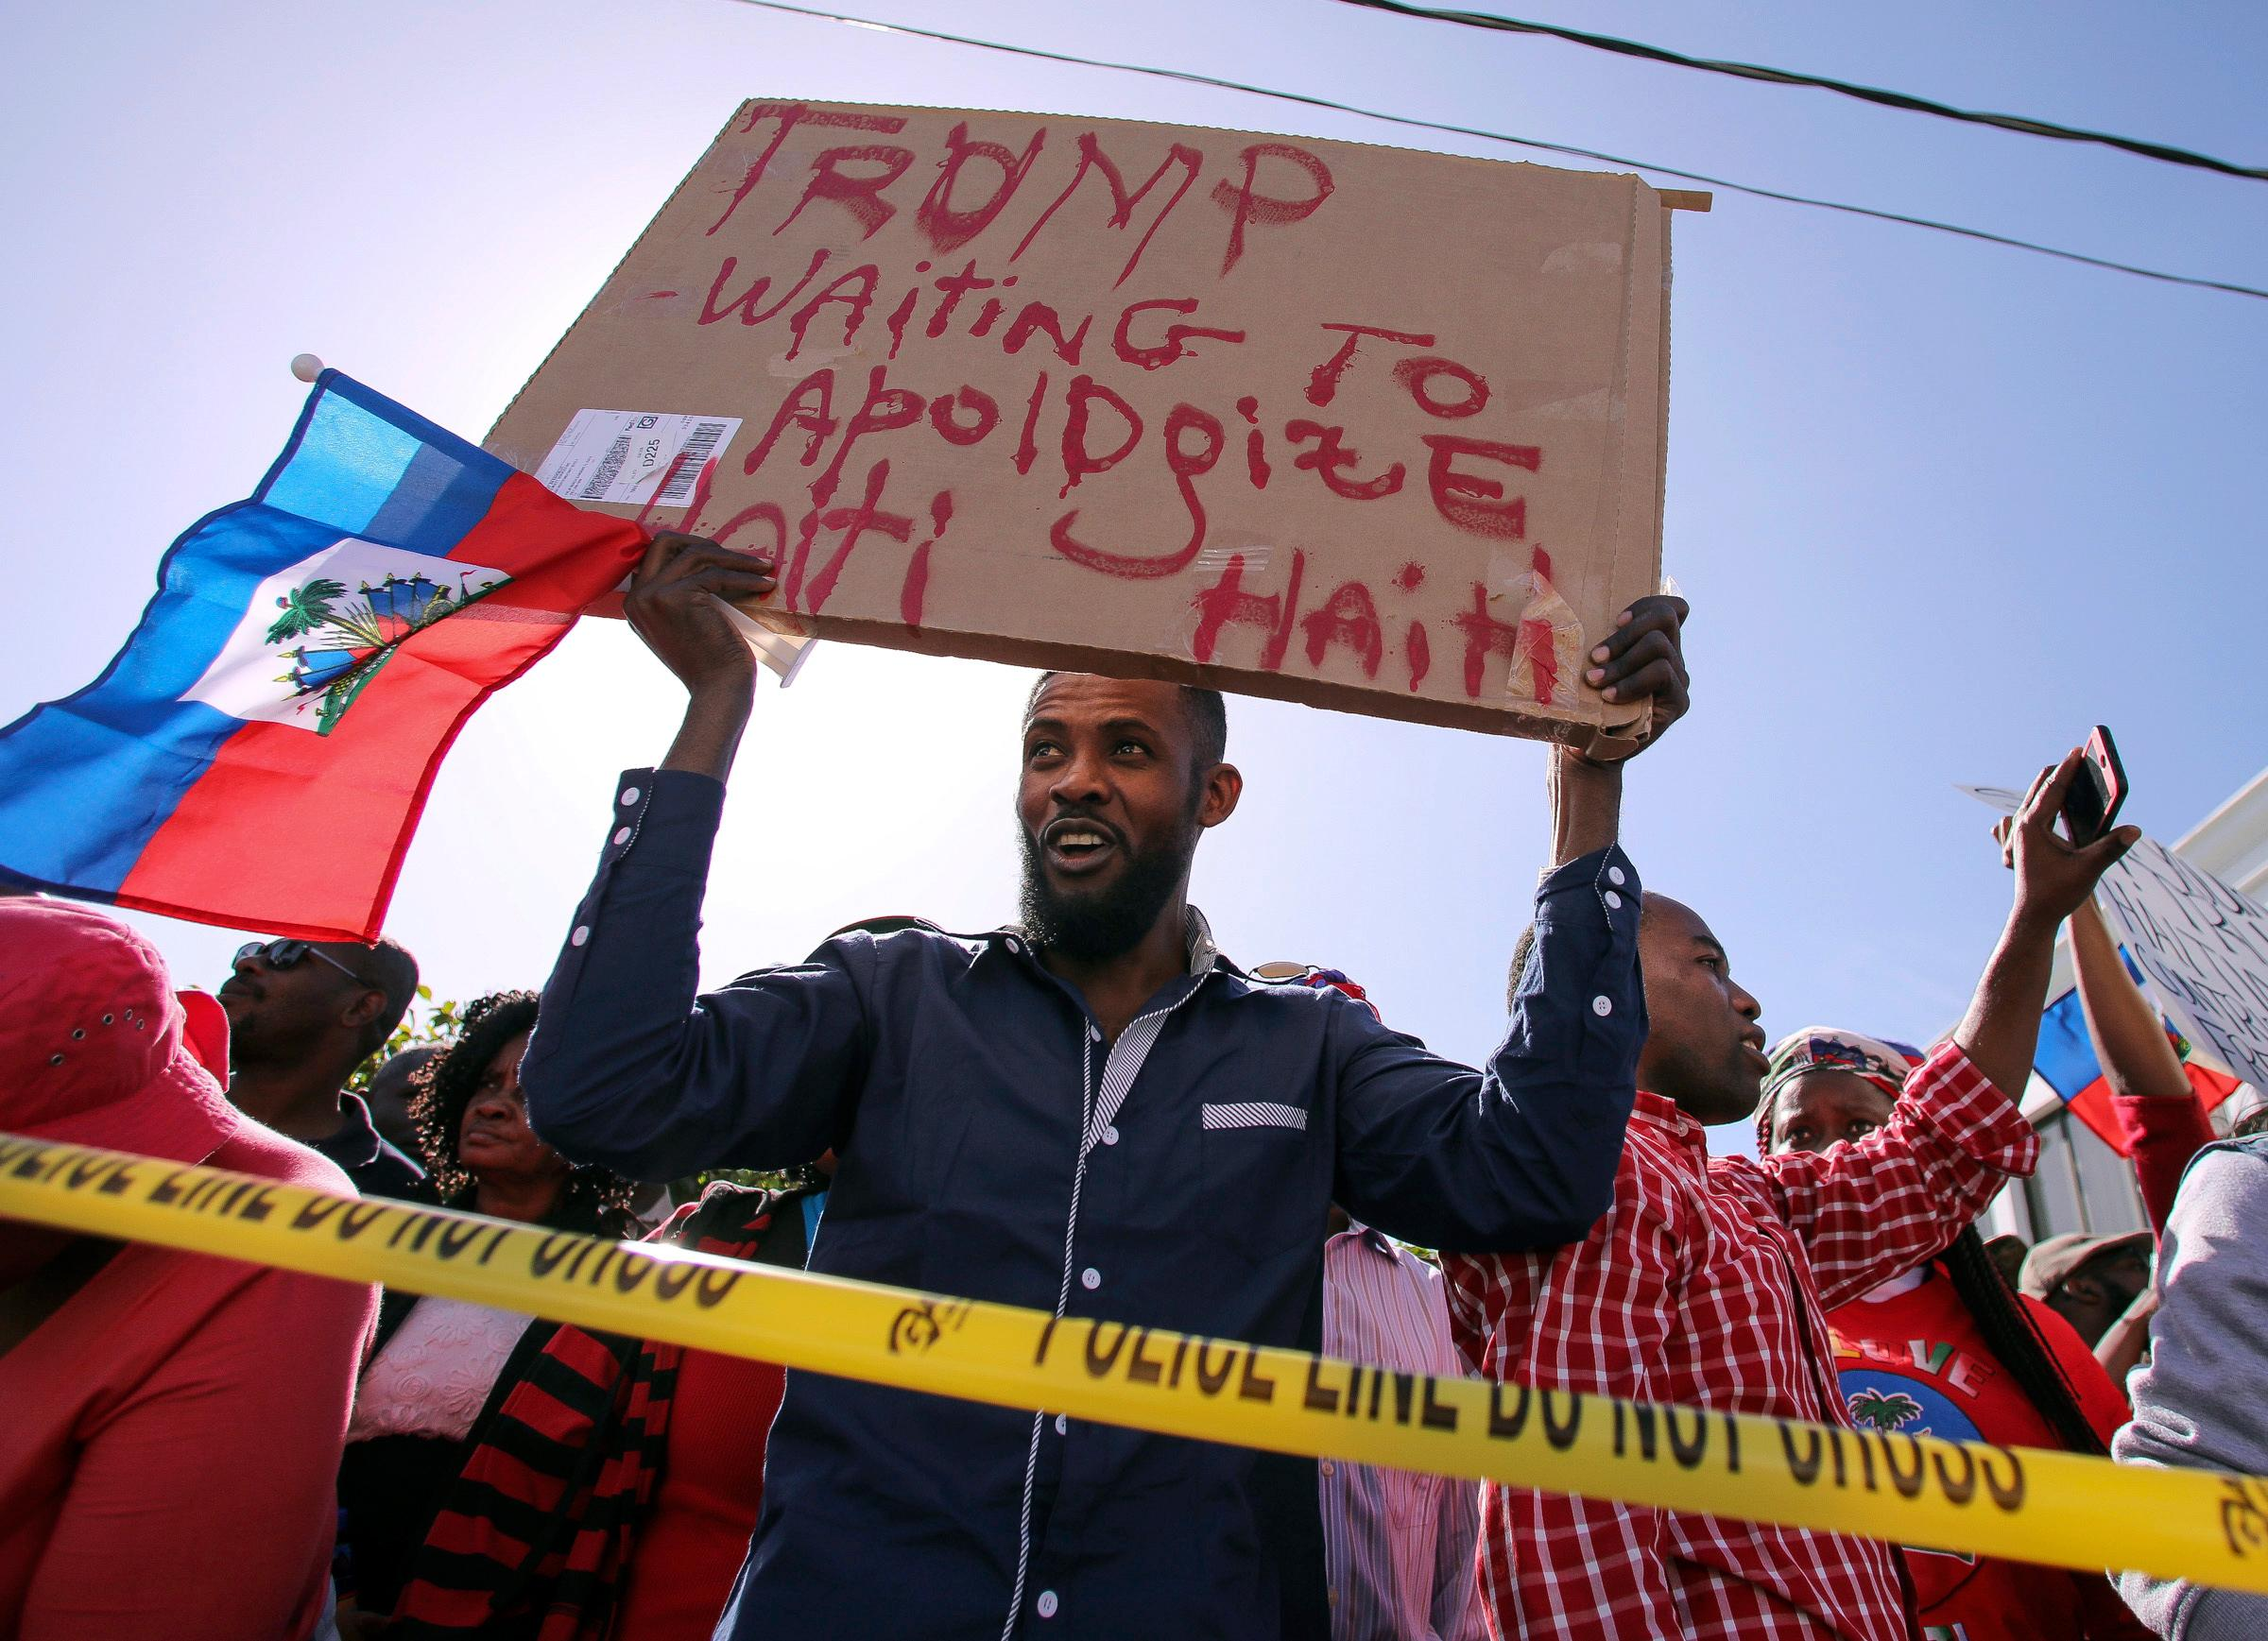 Haitian community members protest near President Donald Trump's Mar-a-Lago estate Monday, Jan. 15, 2018, in West Palm Beach, Fla. Trump is defending himself anew against accusations that he is racist, this time after recent disparaging comments about Haiti and African nations. The group said they were there to demand an apology from the Trump. (Damon Higgins/Palm Beach Post via AP)